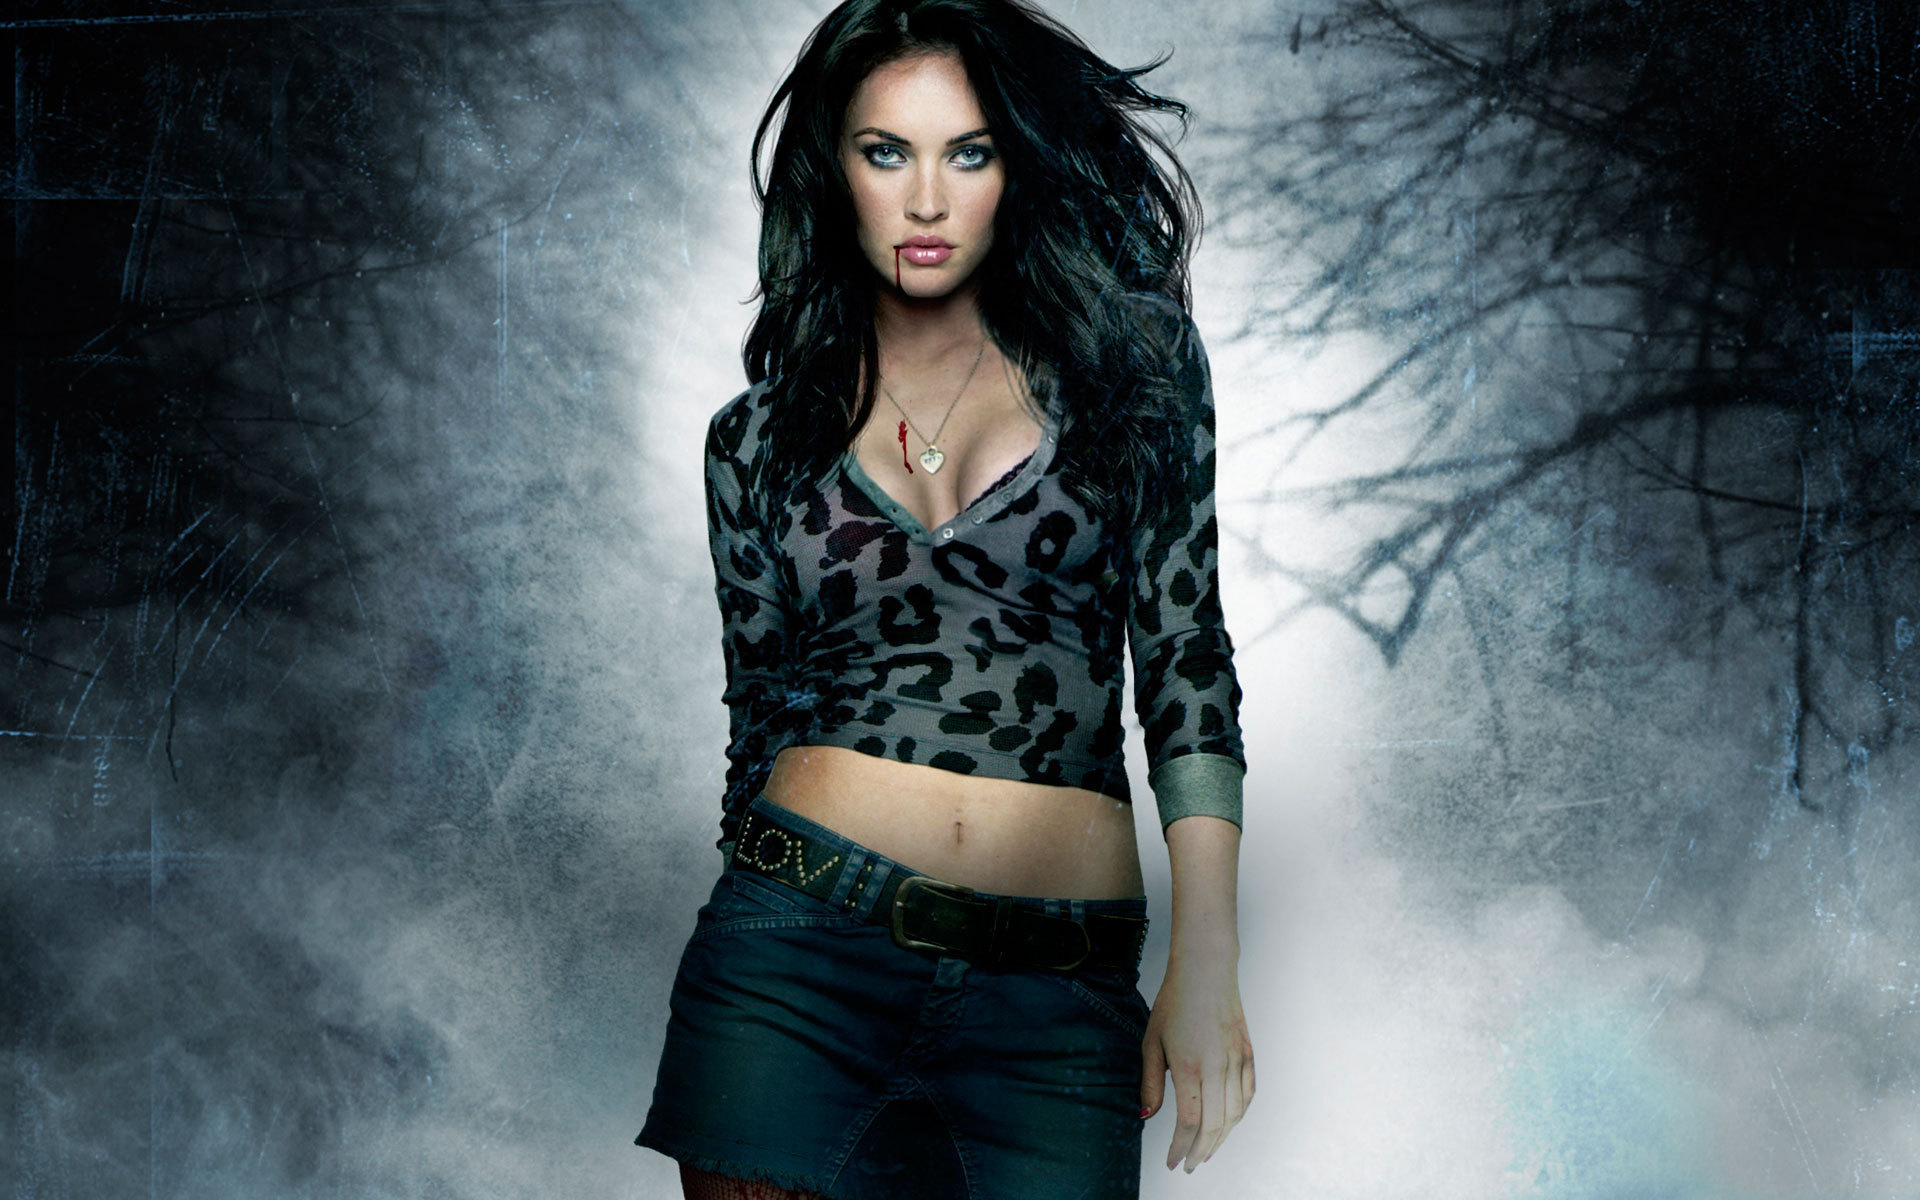 kris-brown images megan fox jenifers body lol hd wallpaper and